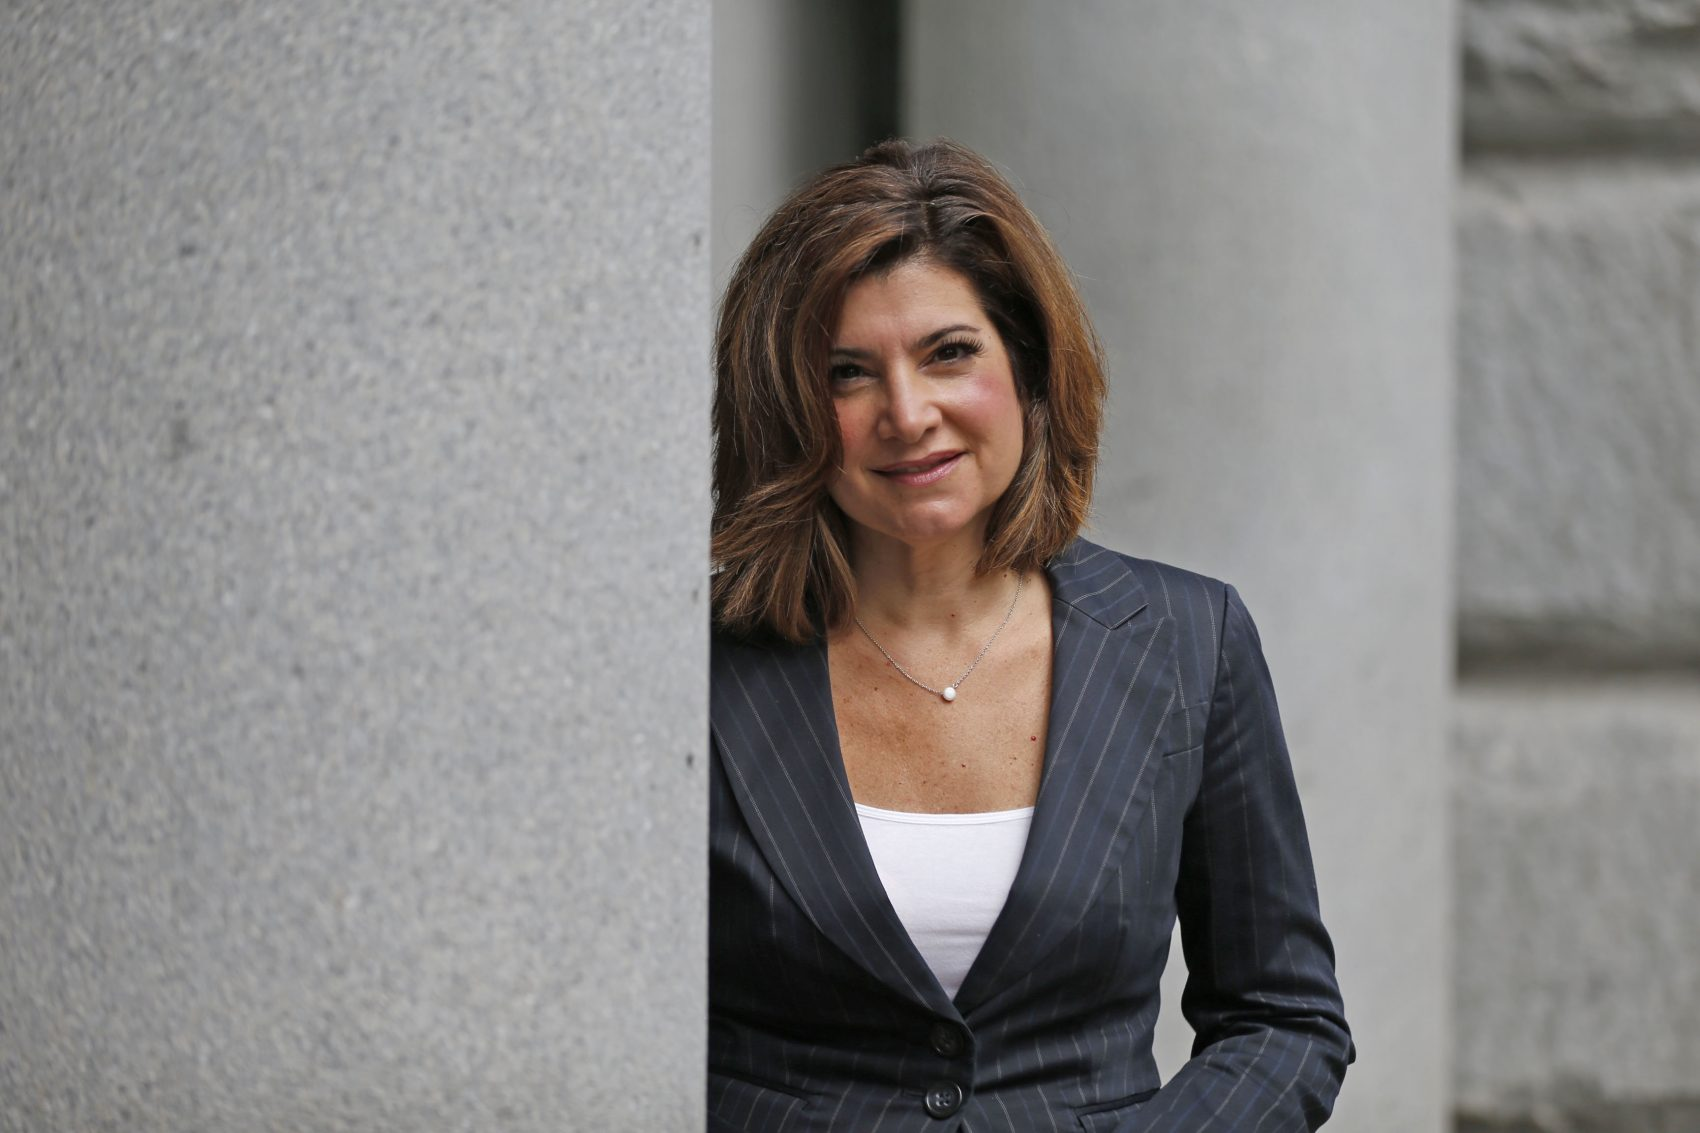 Former Channel 7 news anchor Joanna Pasceri has left the District Attorney's Office for a job with the Amherst Chamber of Commerce. (Robert Kirkham/Buffalo News)